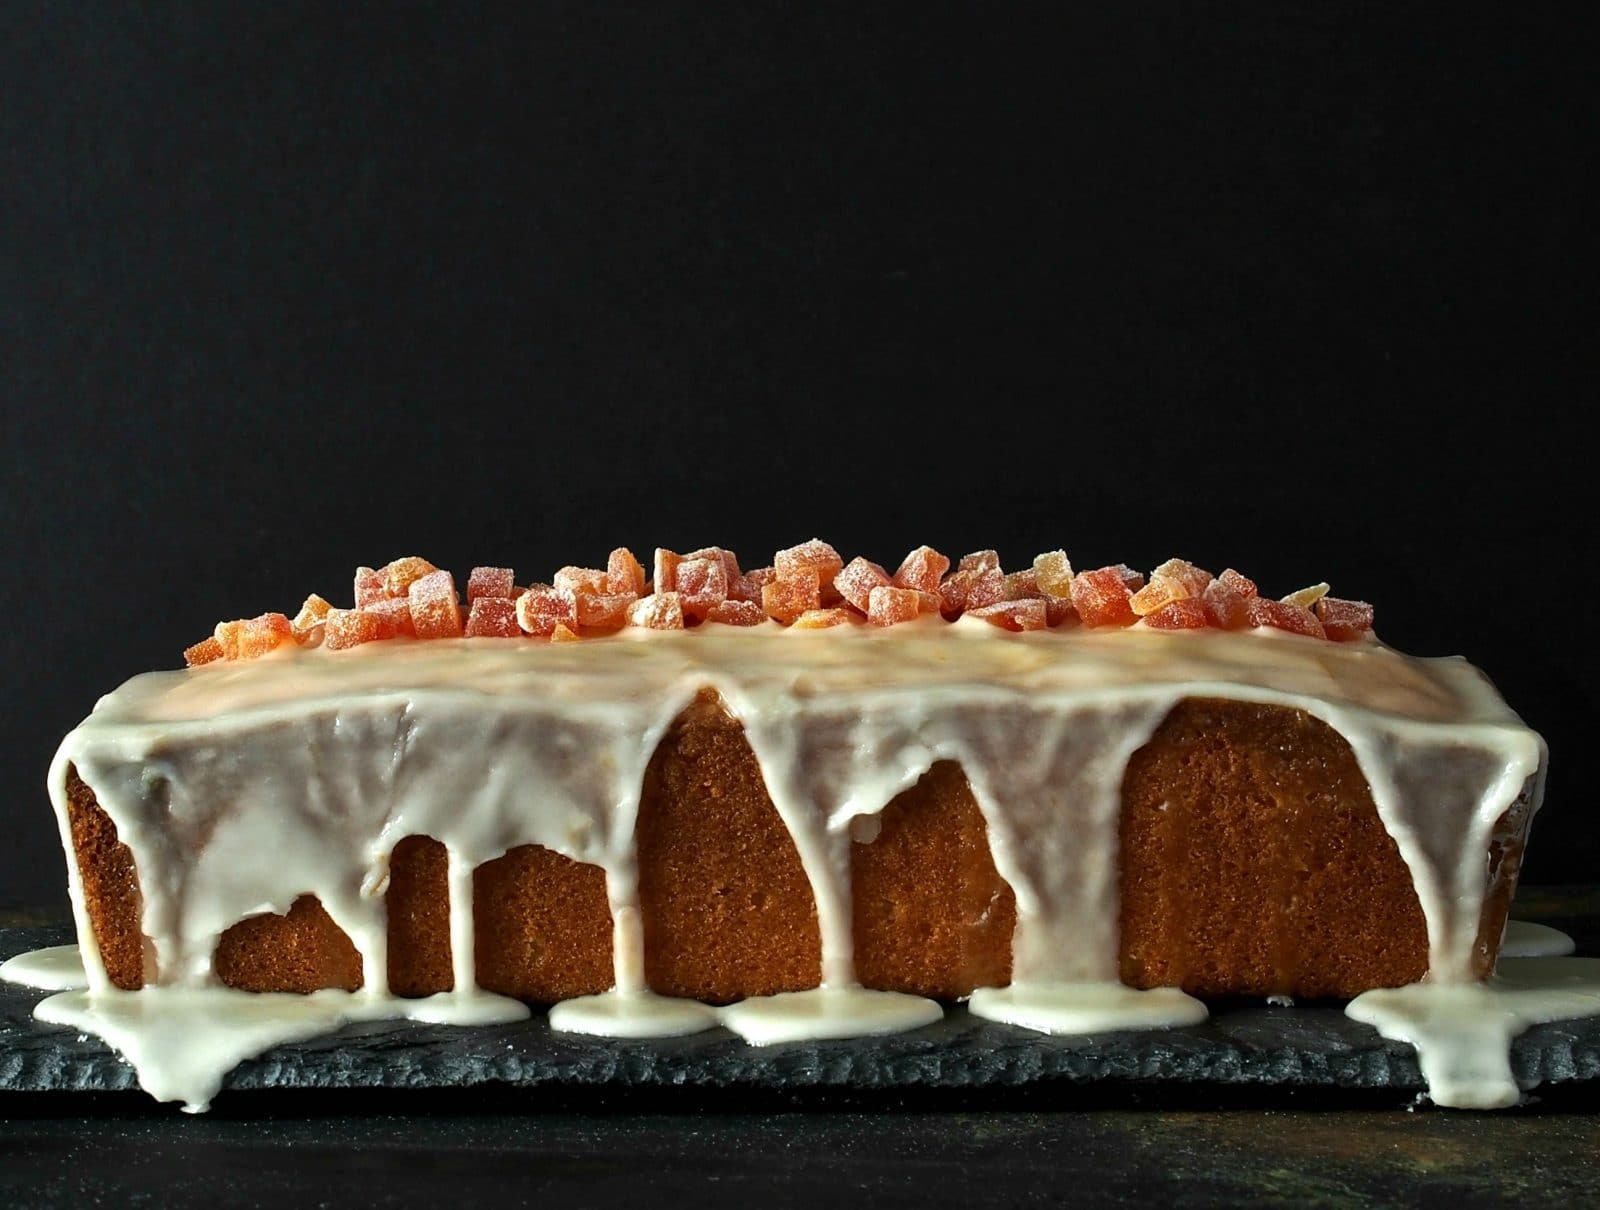 Grapefruit Pound Cake with Grapefruit Glaze - citrusy & sweet with a tender crumb. The perfect dessert for any occasion and will become a family favorite.